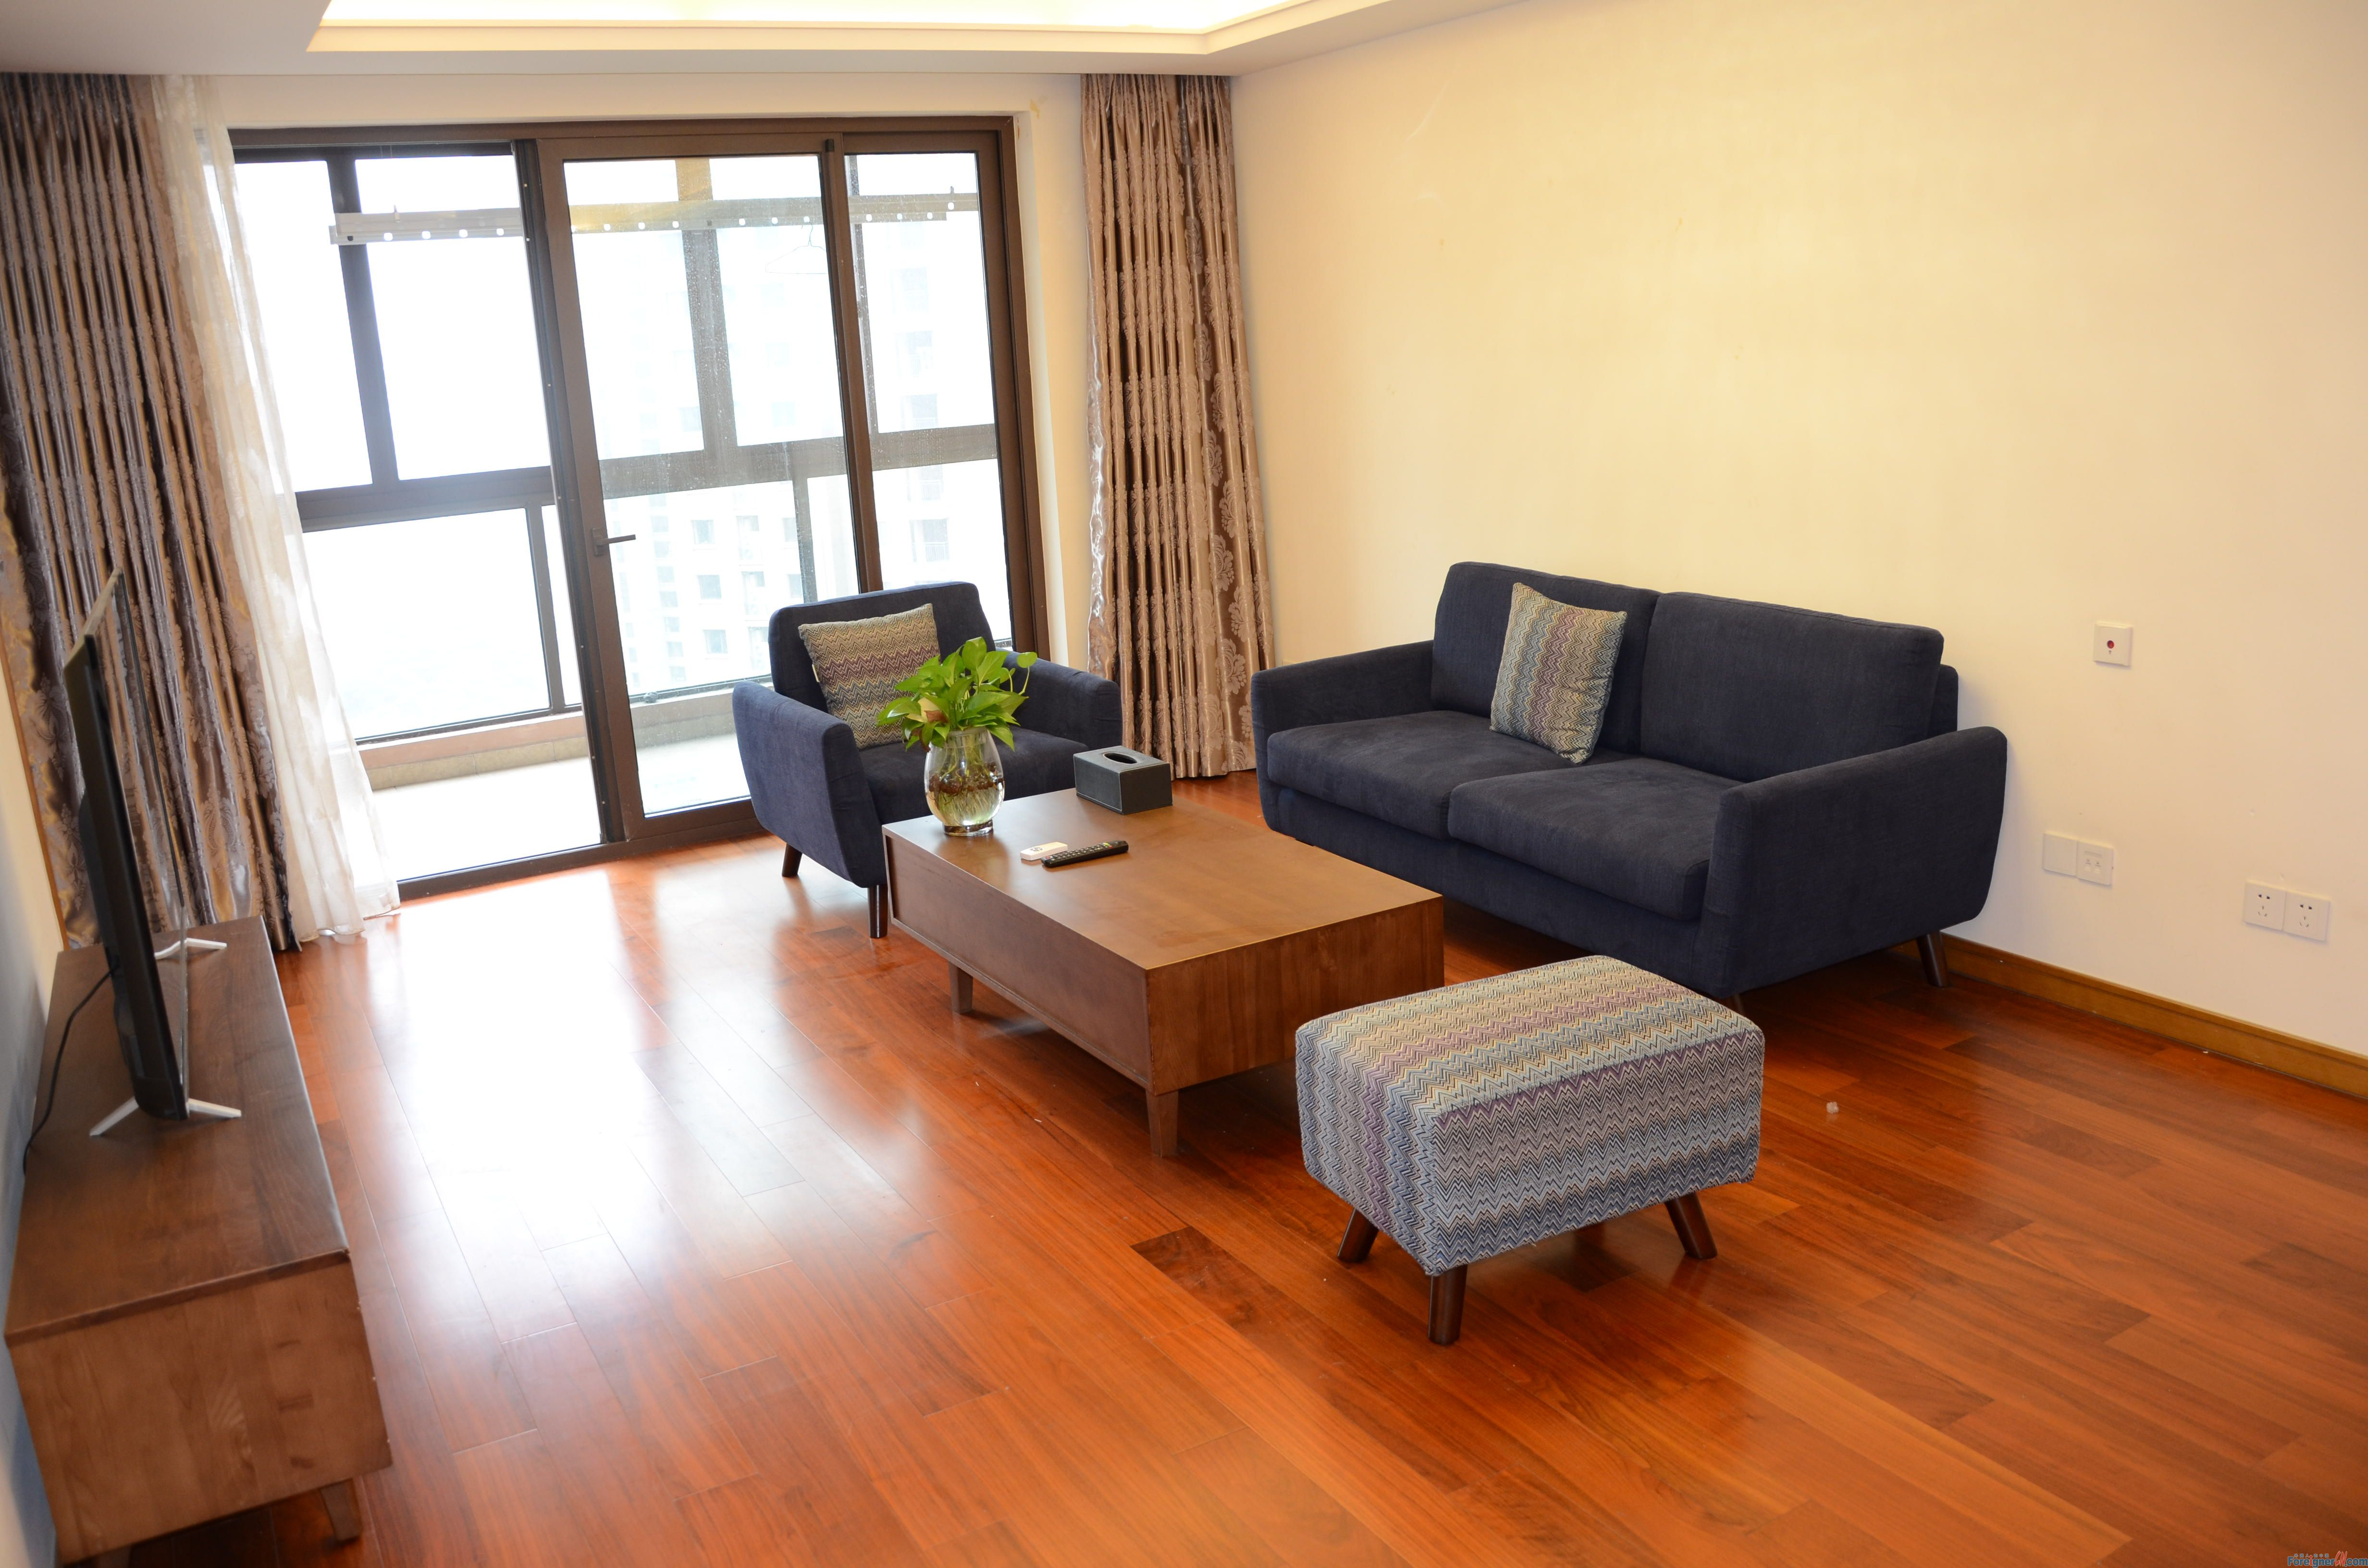 8500RMB/Brand new 3br/1ba/Bayside garden/gym/pool/modern style/times square/moon harbor